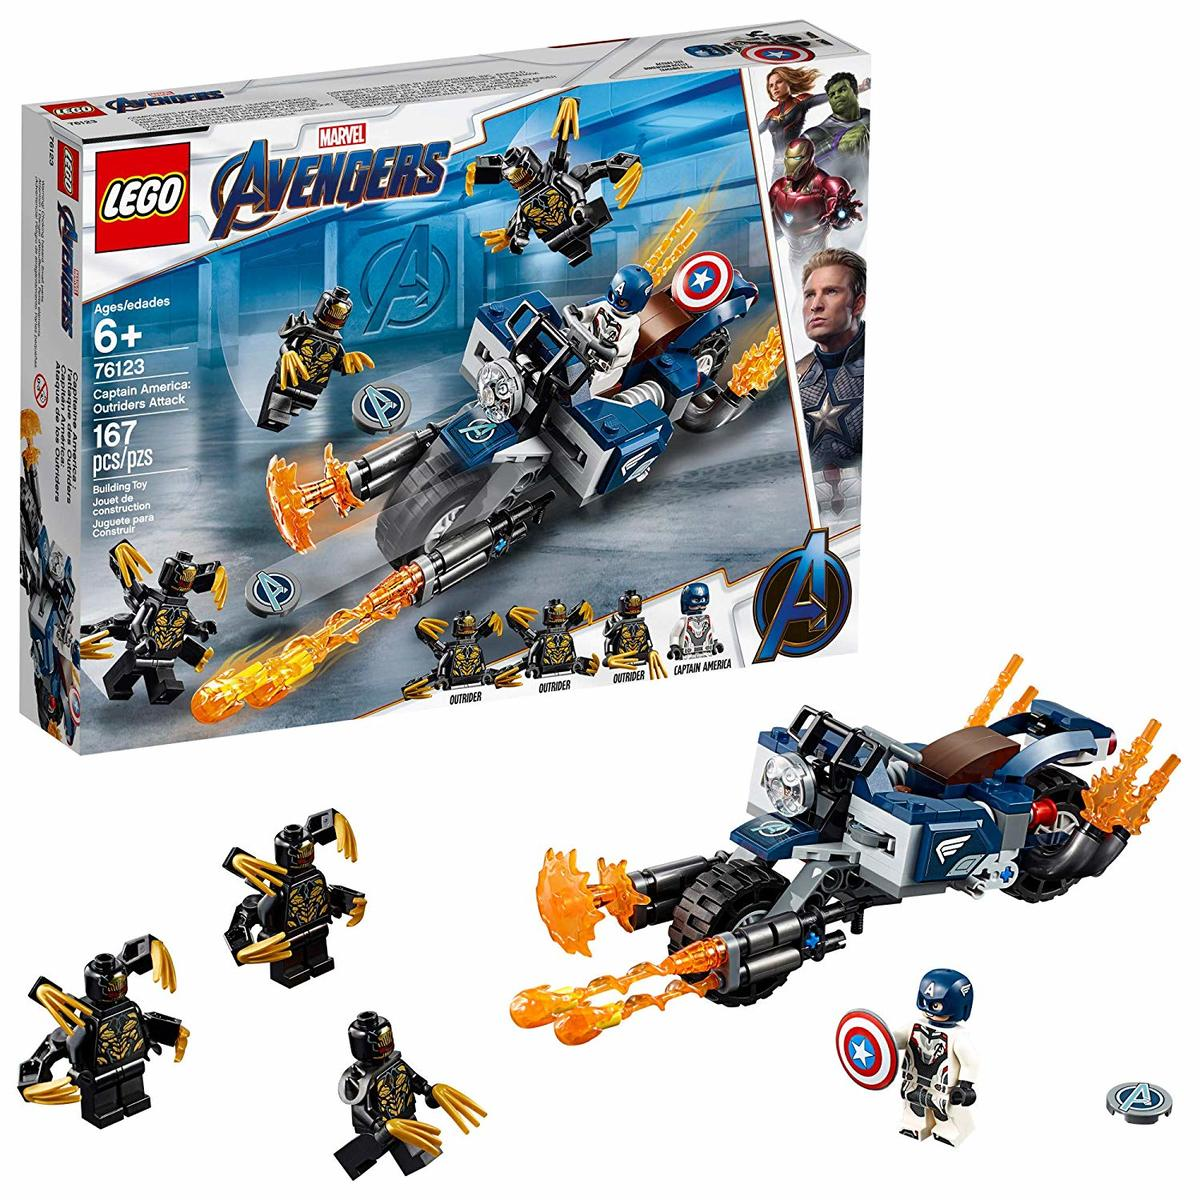 Marvel Superheroes 76123  Captain America: Outriders Attack